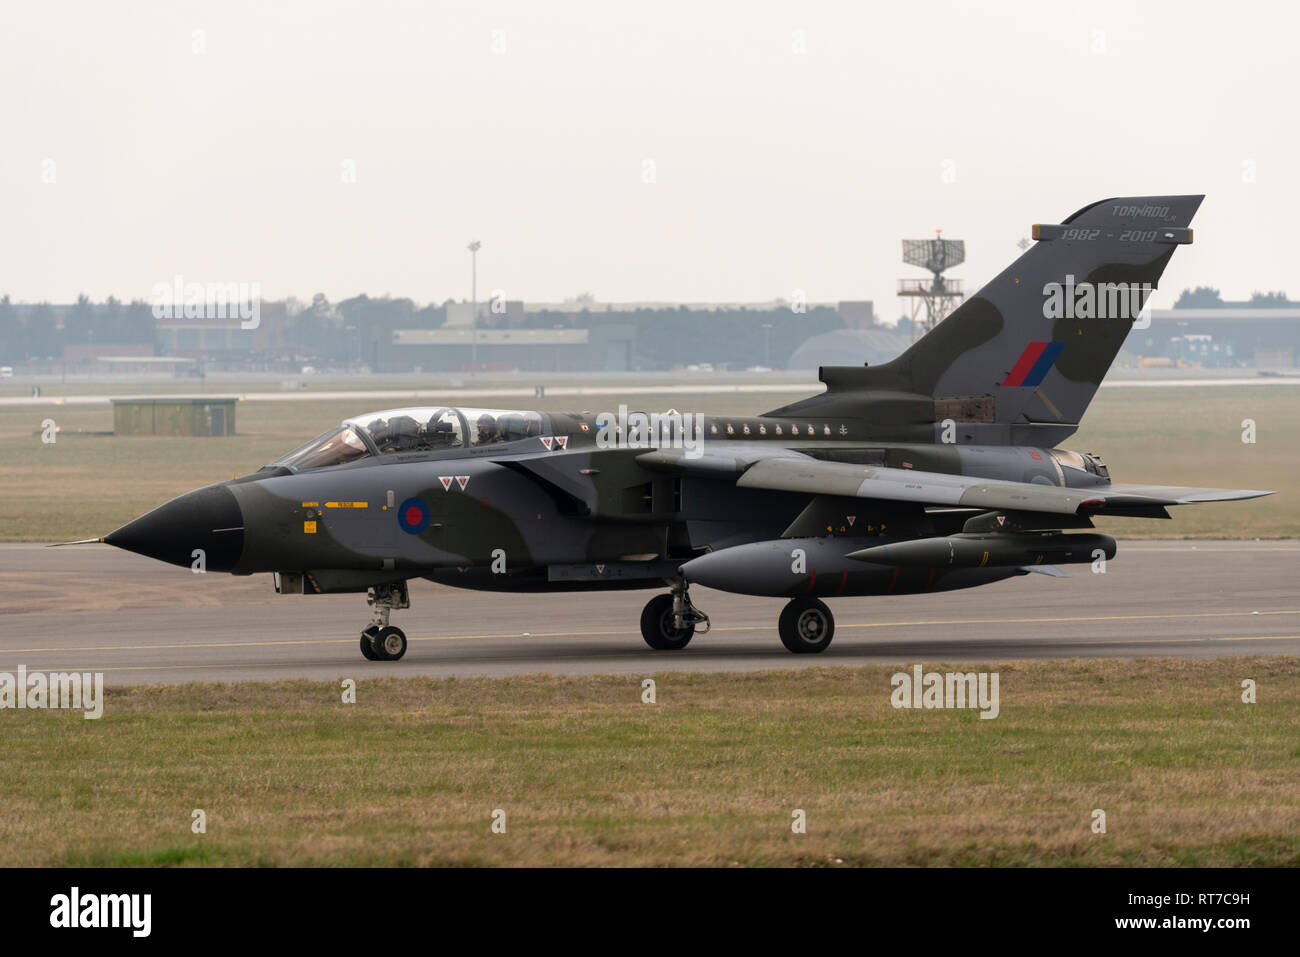 The Royal Air Force is saying farewell to the Panavia